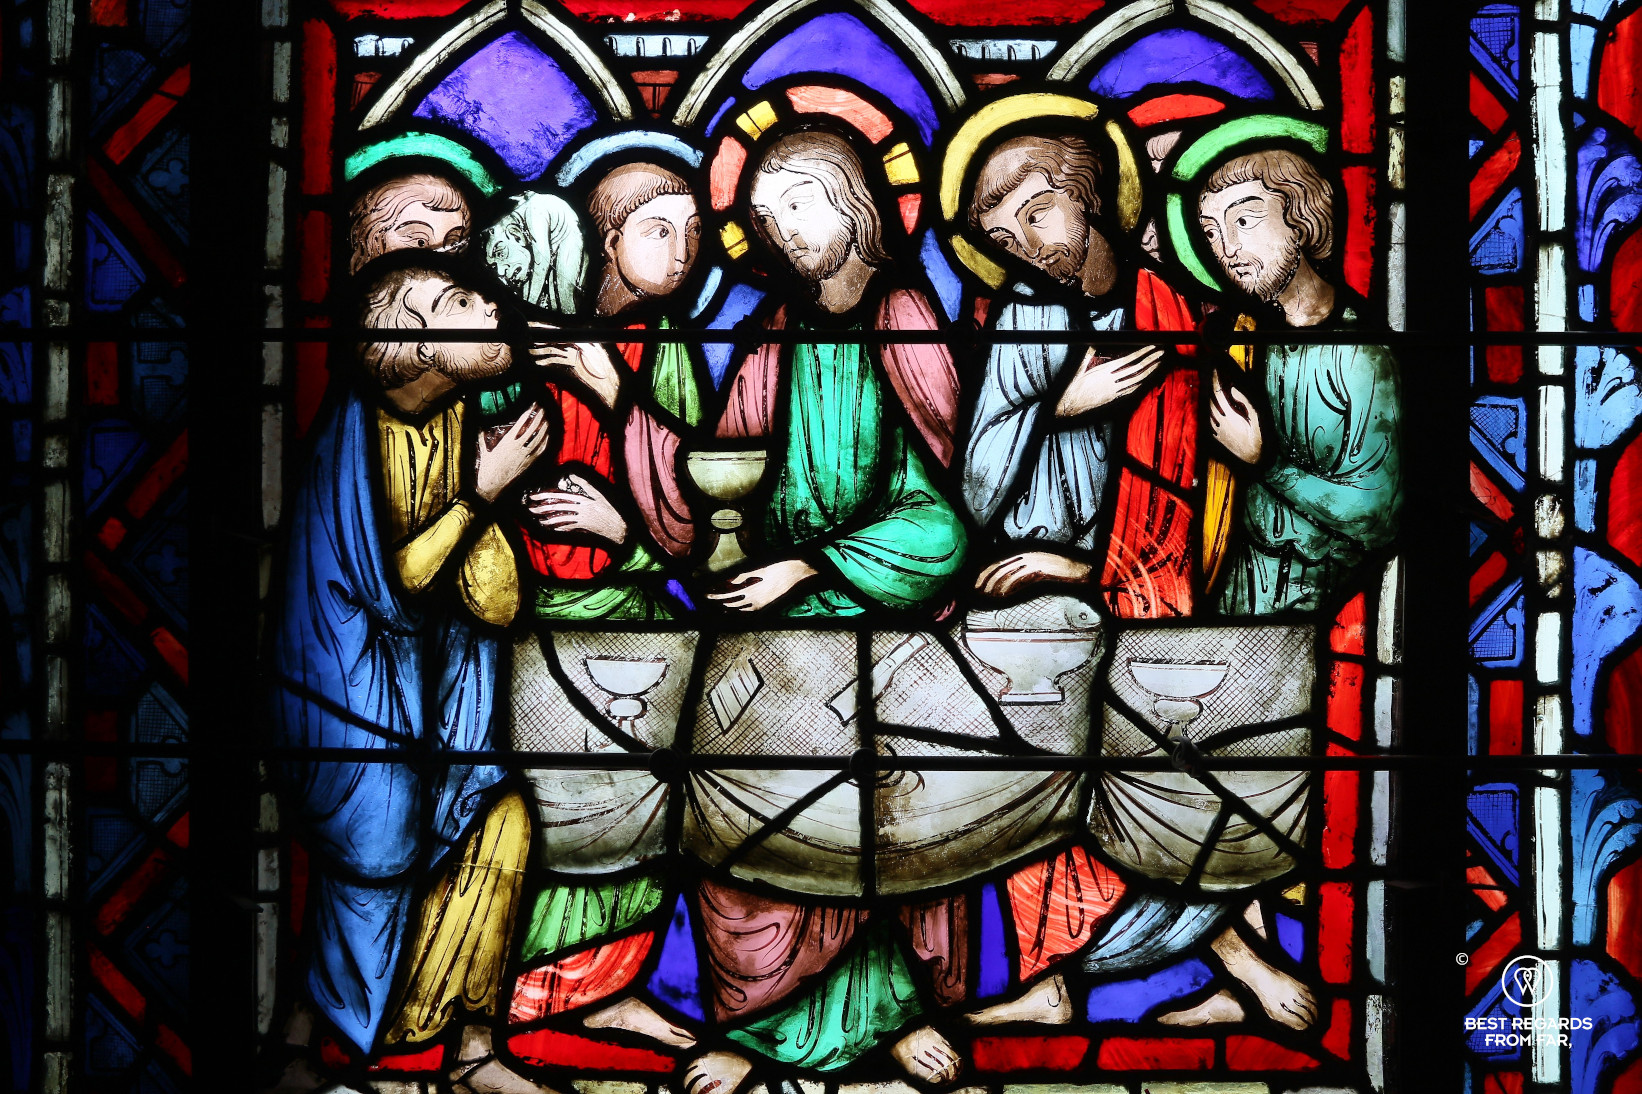 The last supper depicted in the stained-glass windows of La Sainte Chapelle, Paris, France